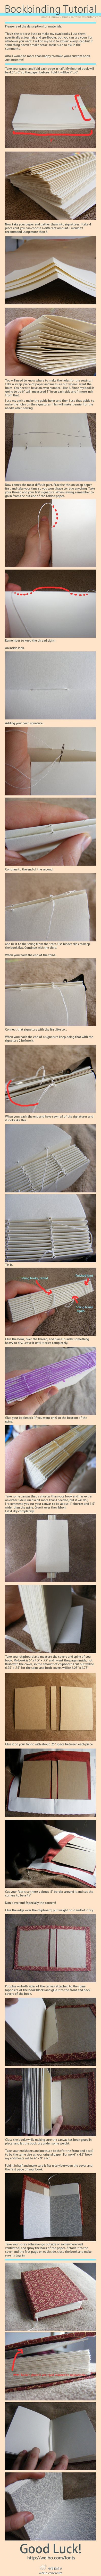 How to make your own lovely note book step by step DIY tutorial picture instructions